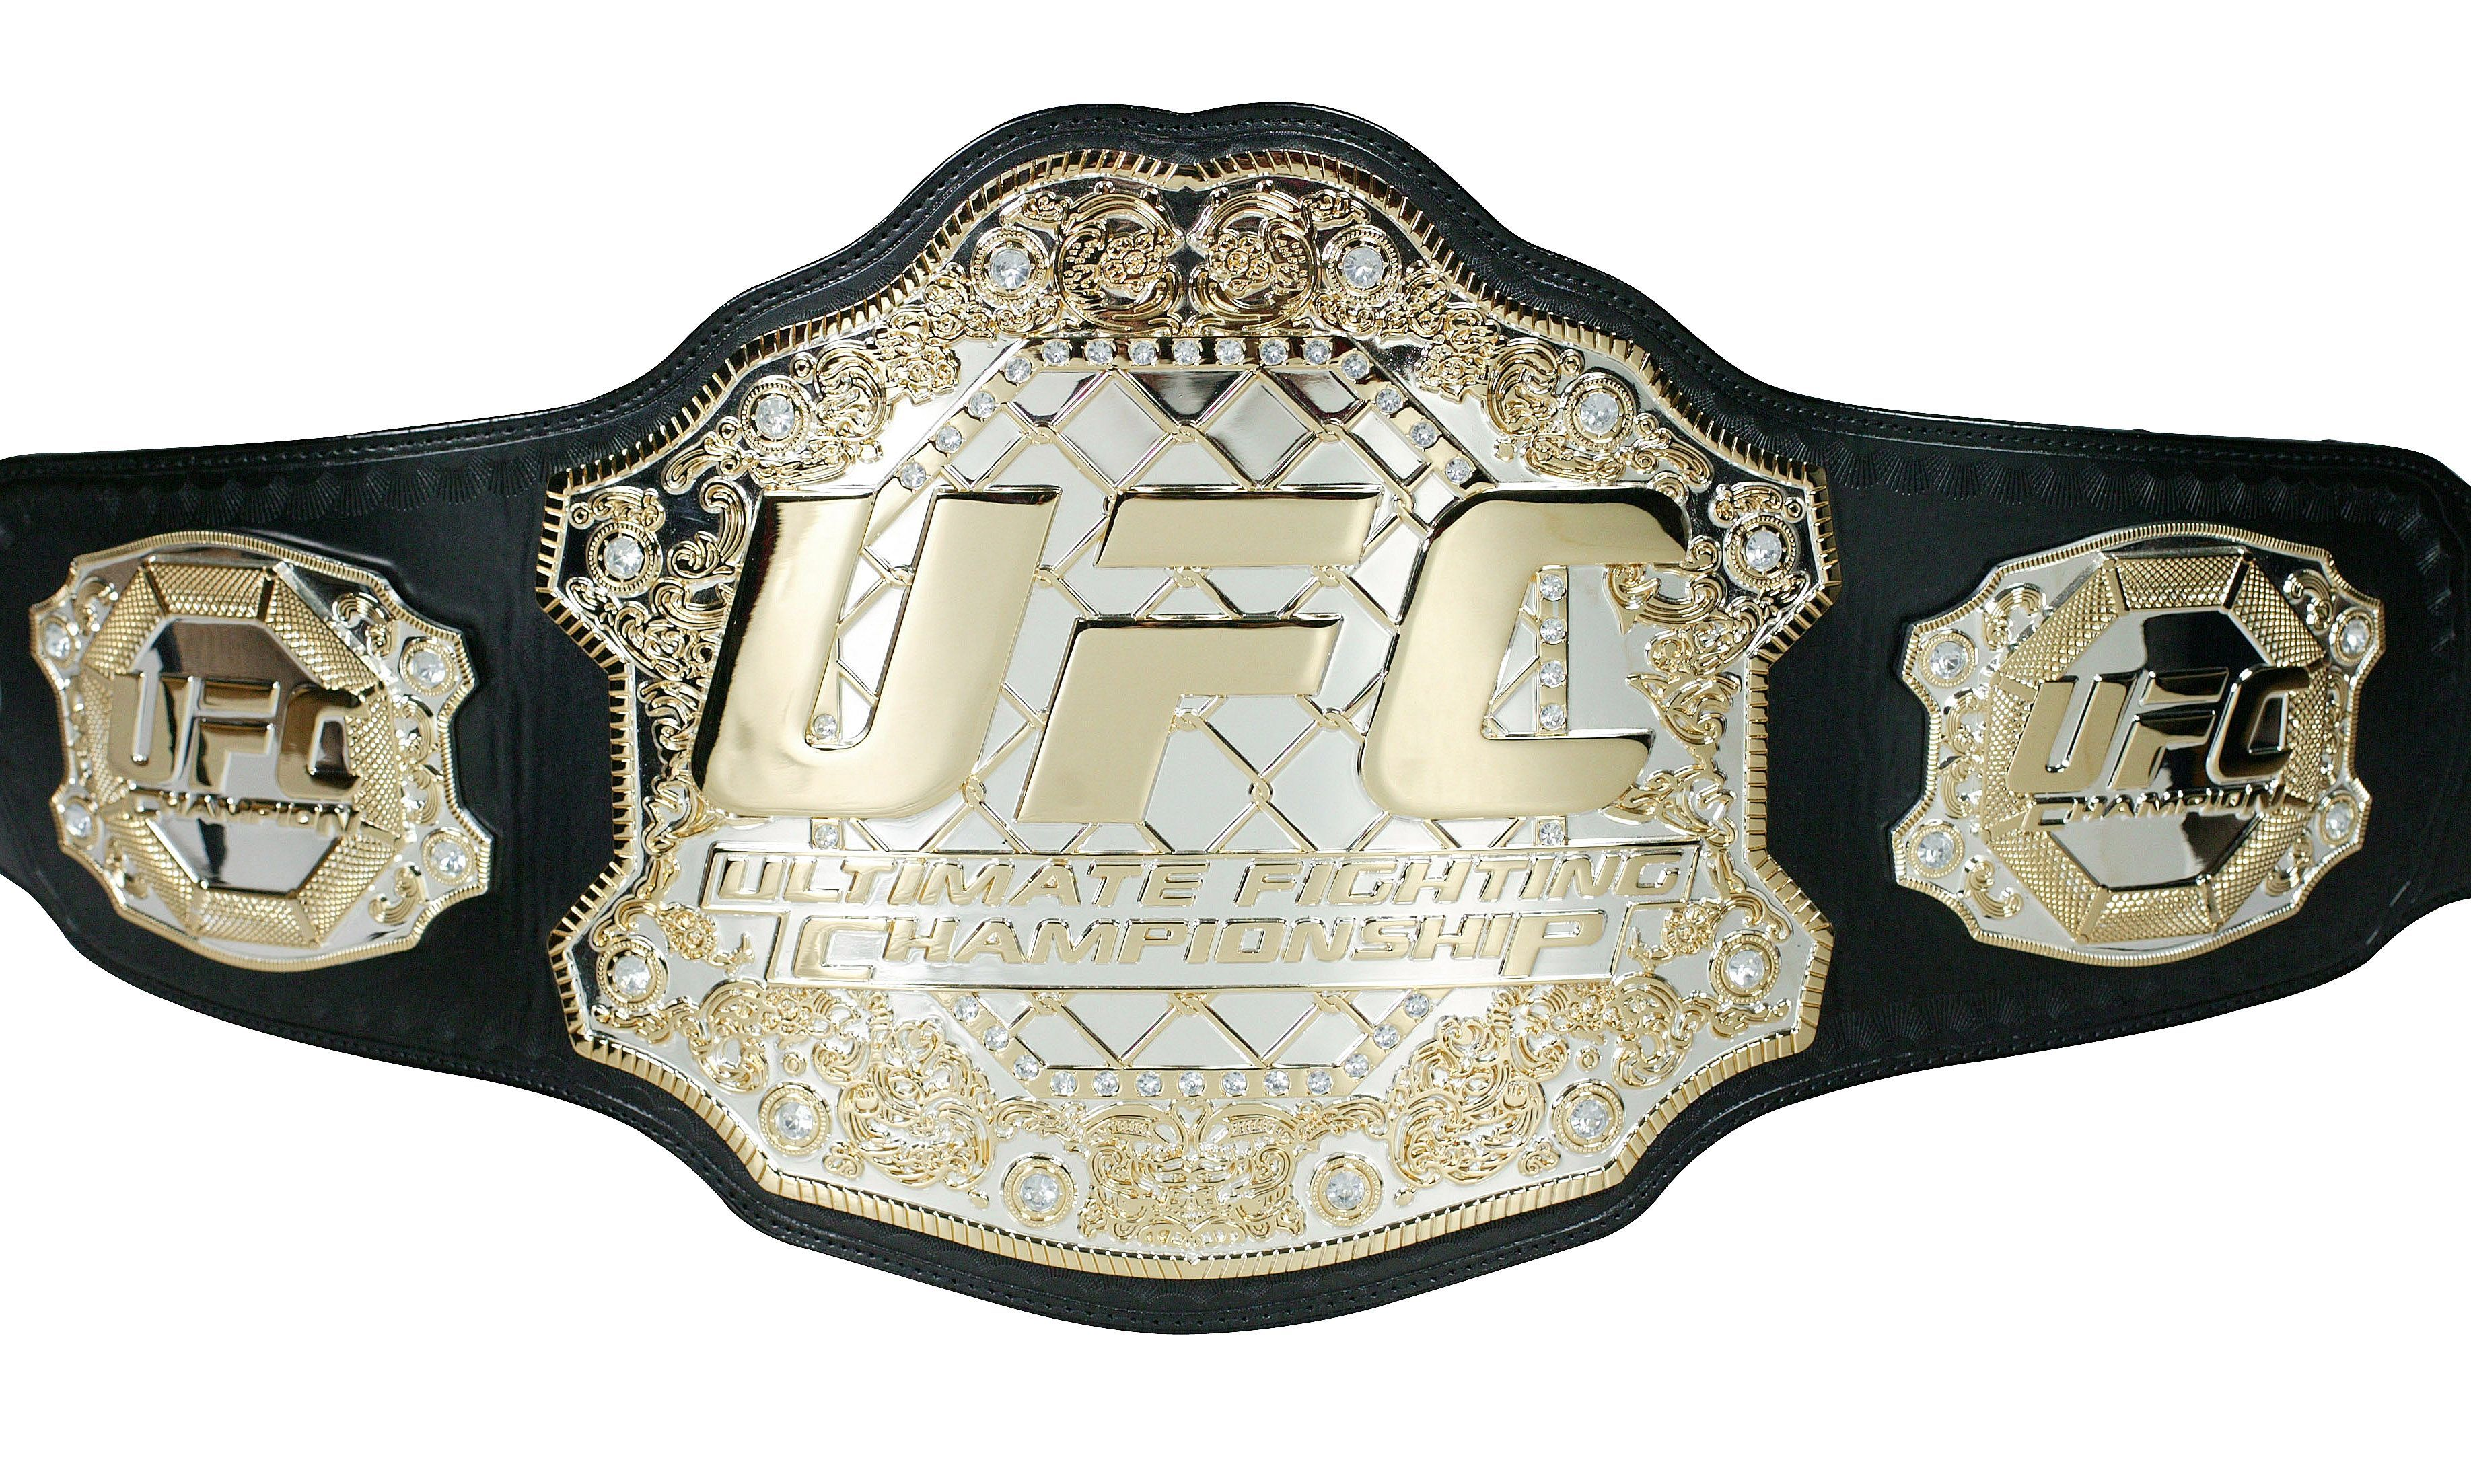 Image result for UFC championship belt